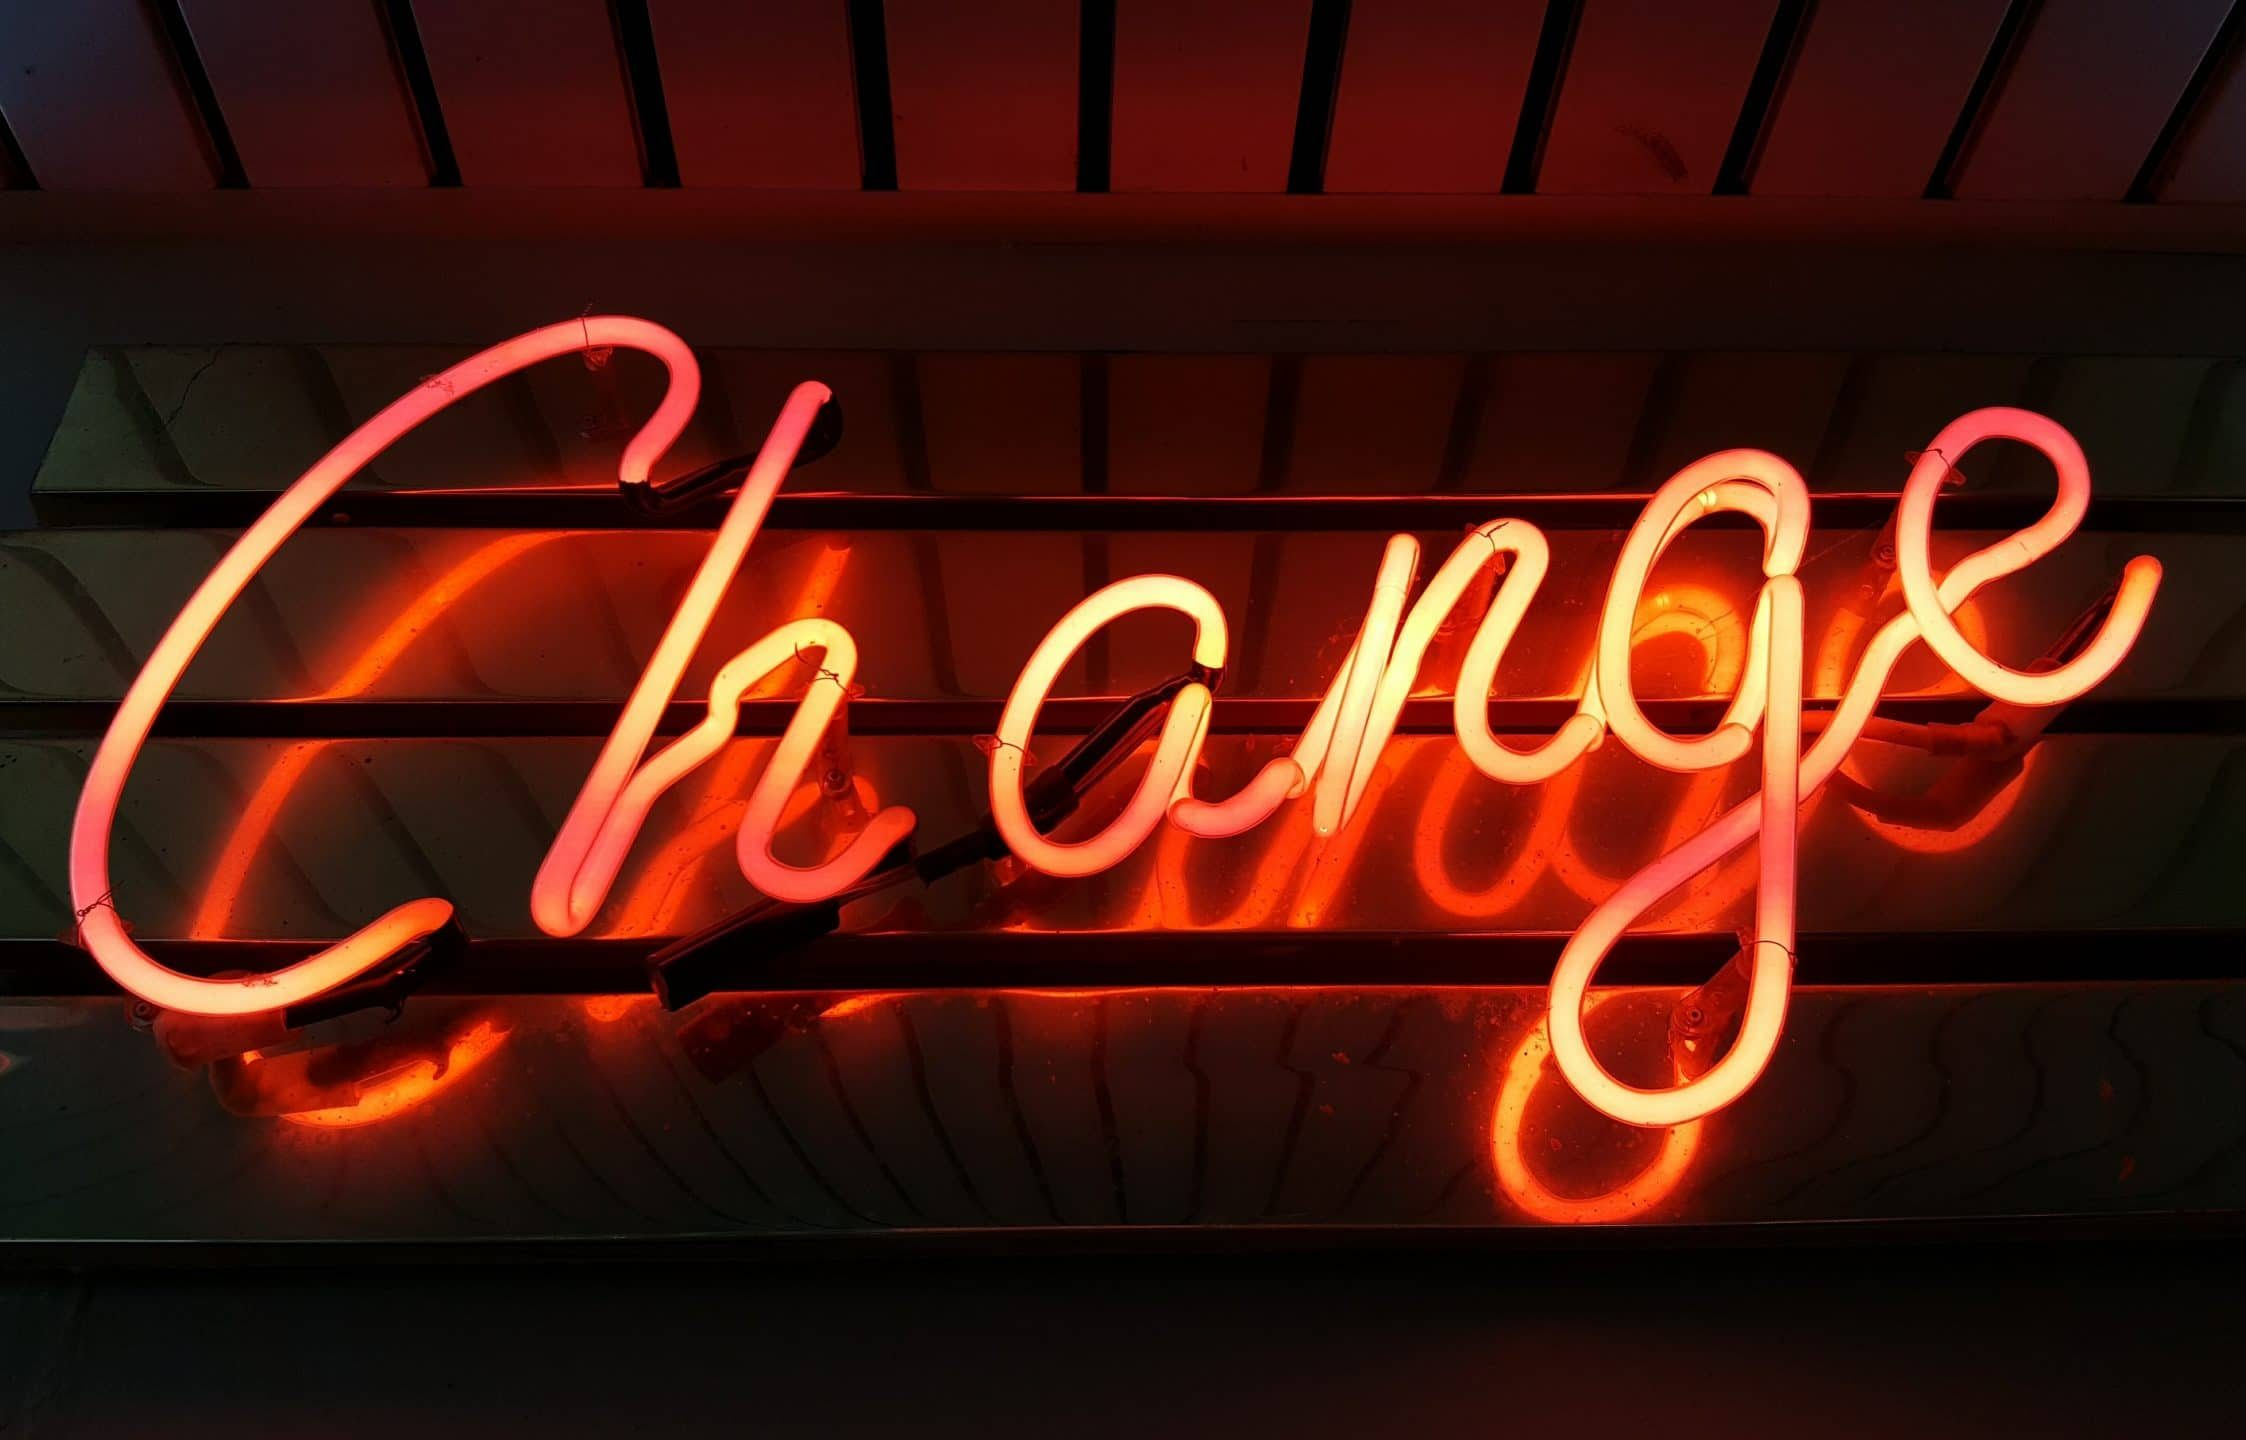 Read more about the article Considering a Job Change? What Opportunities Should You Consider?